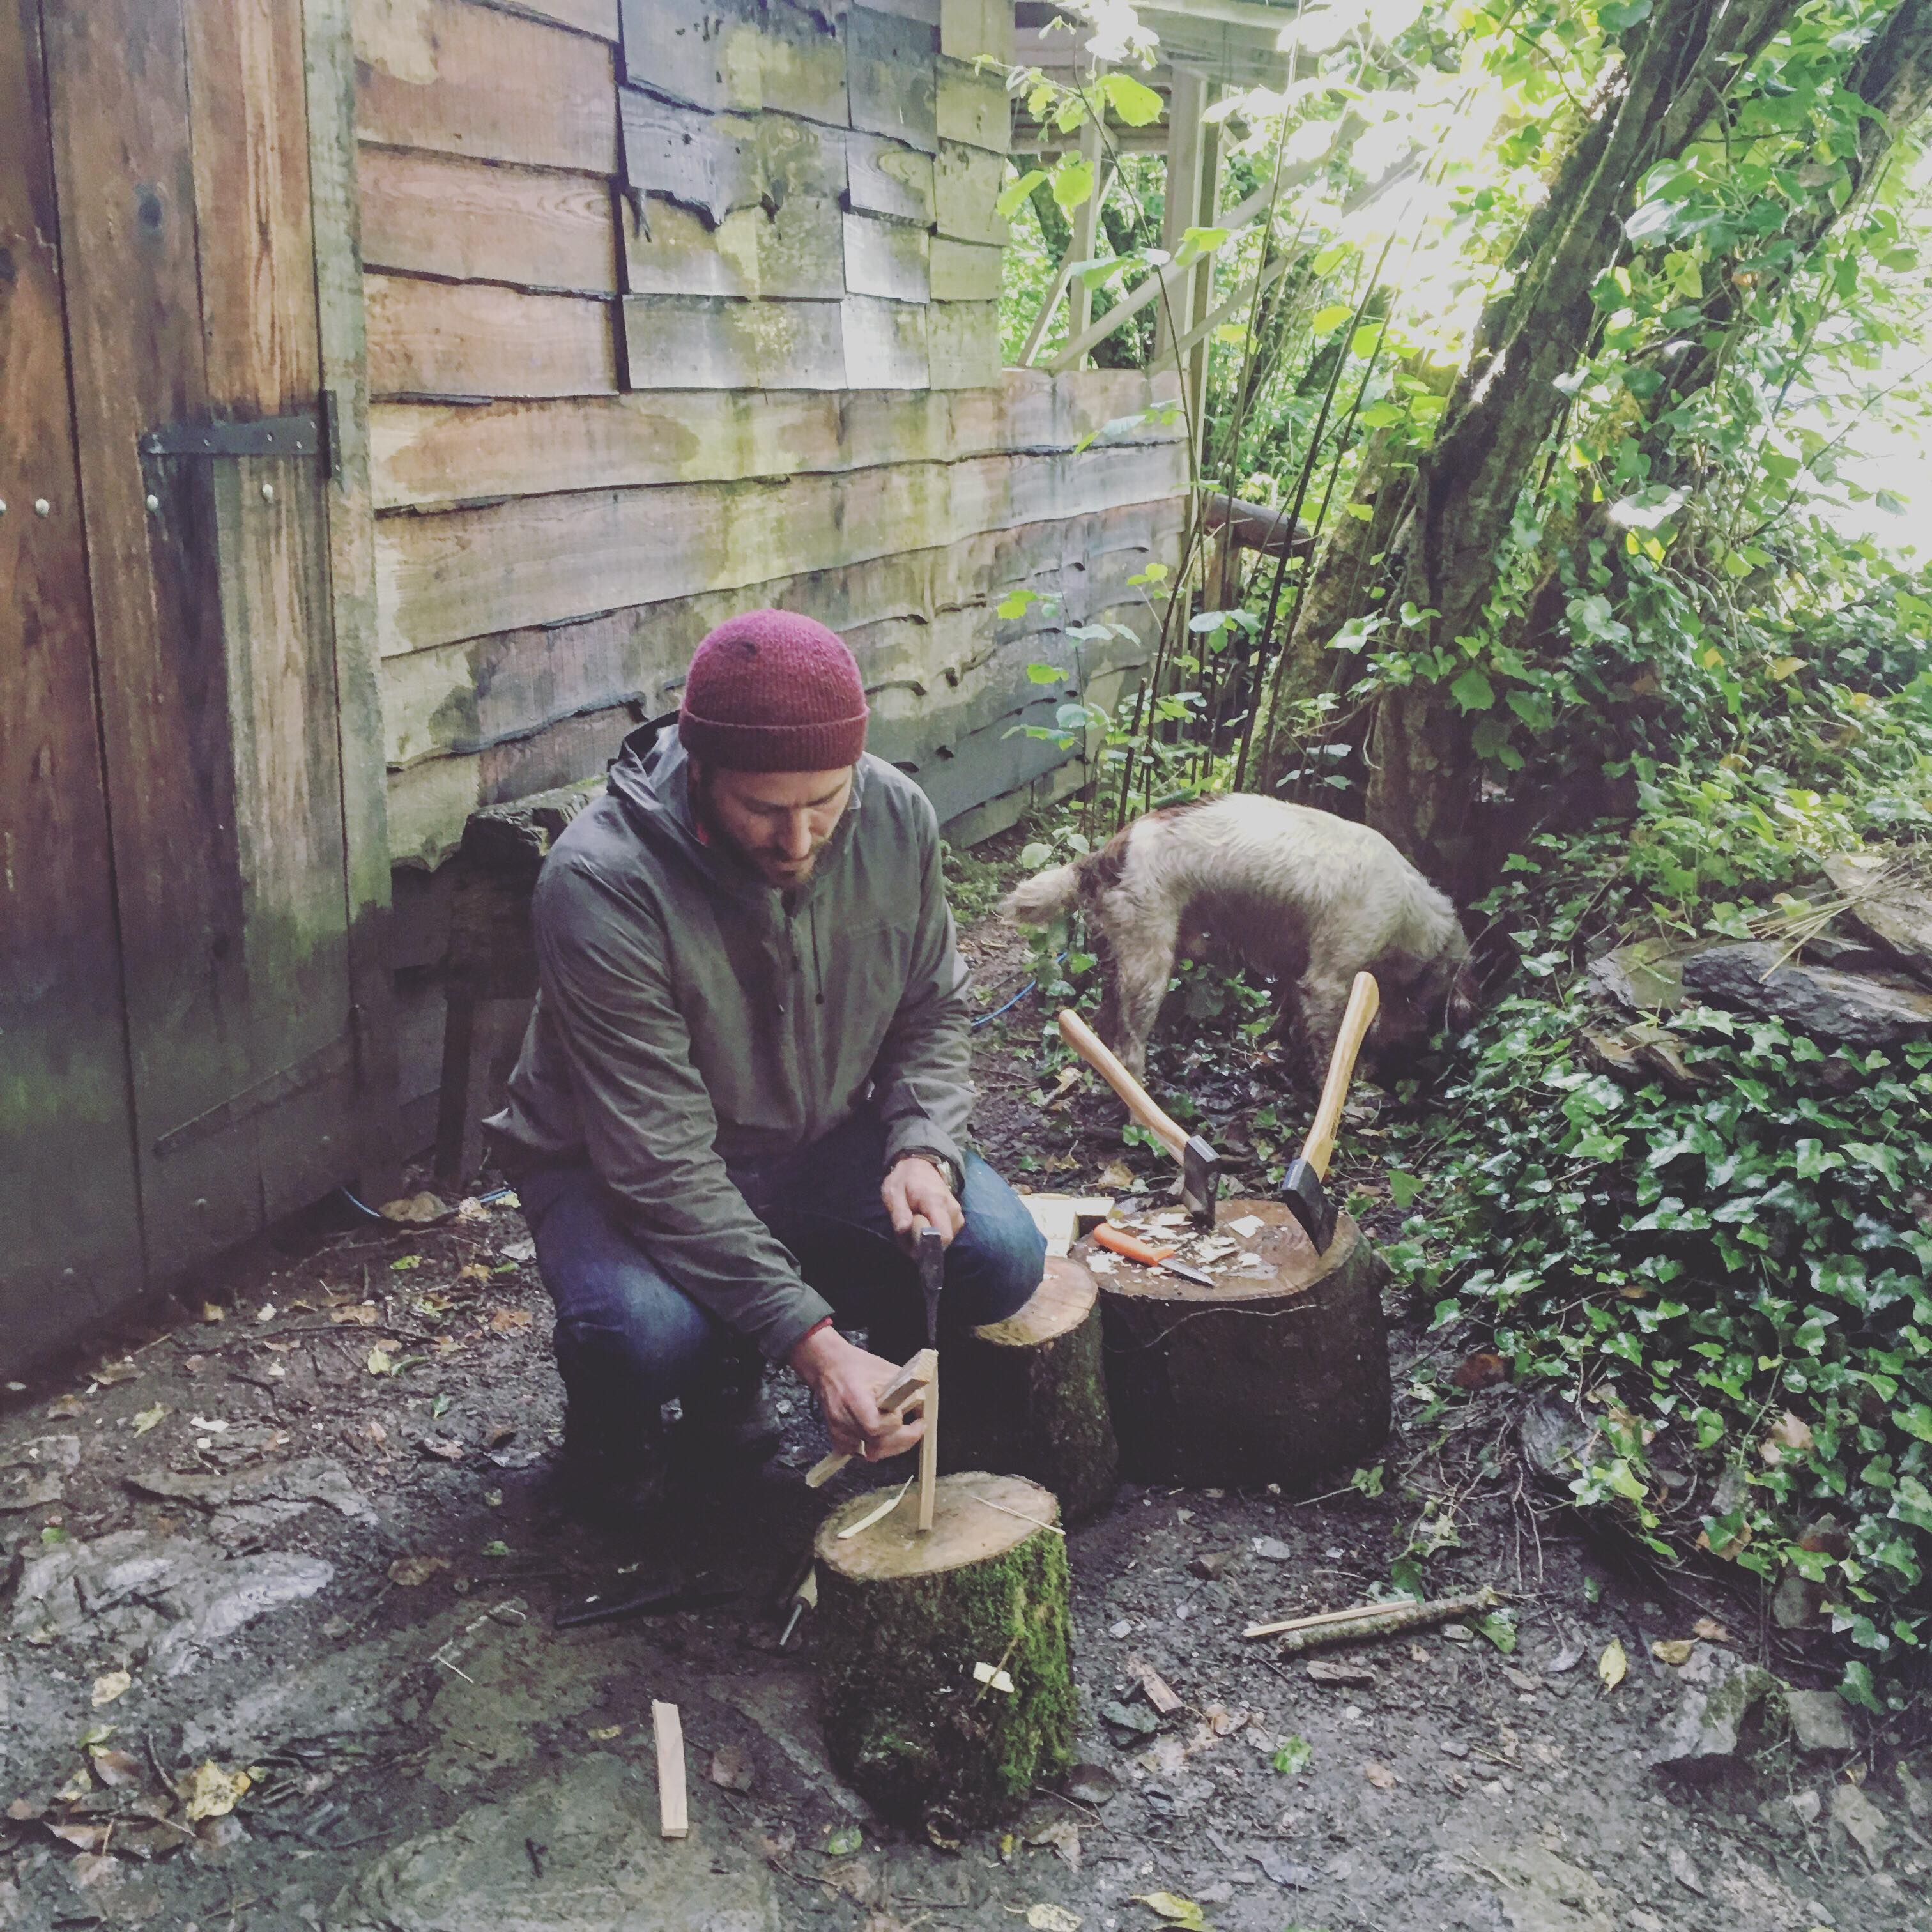 FILSON X 7TH RISE: Testing gear in the wilds of Cornwall